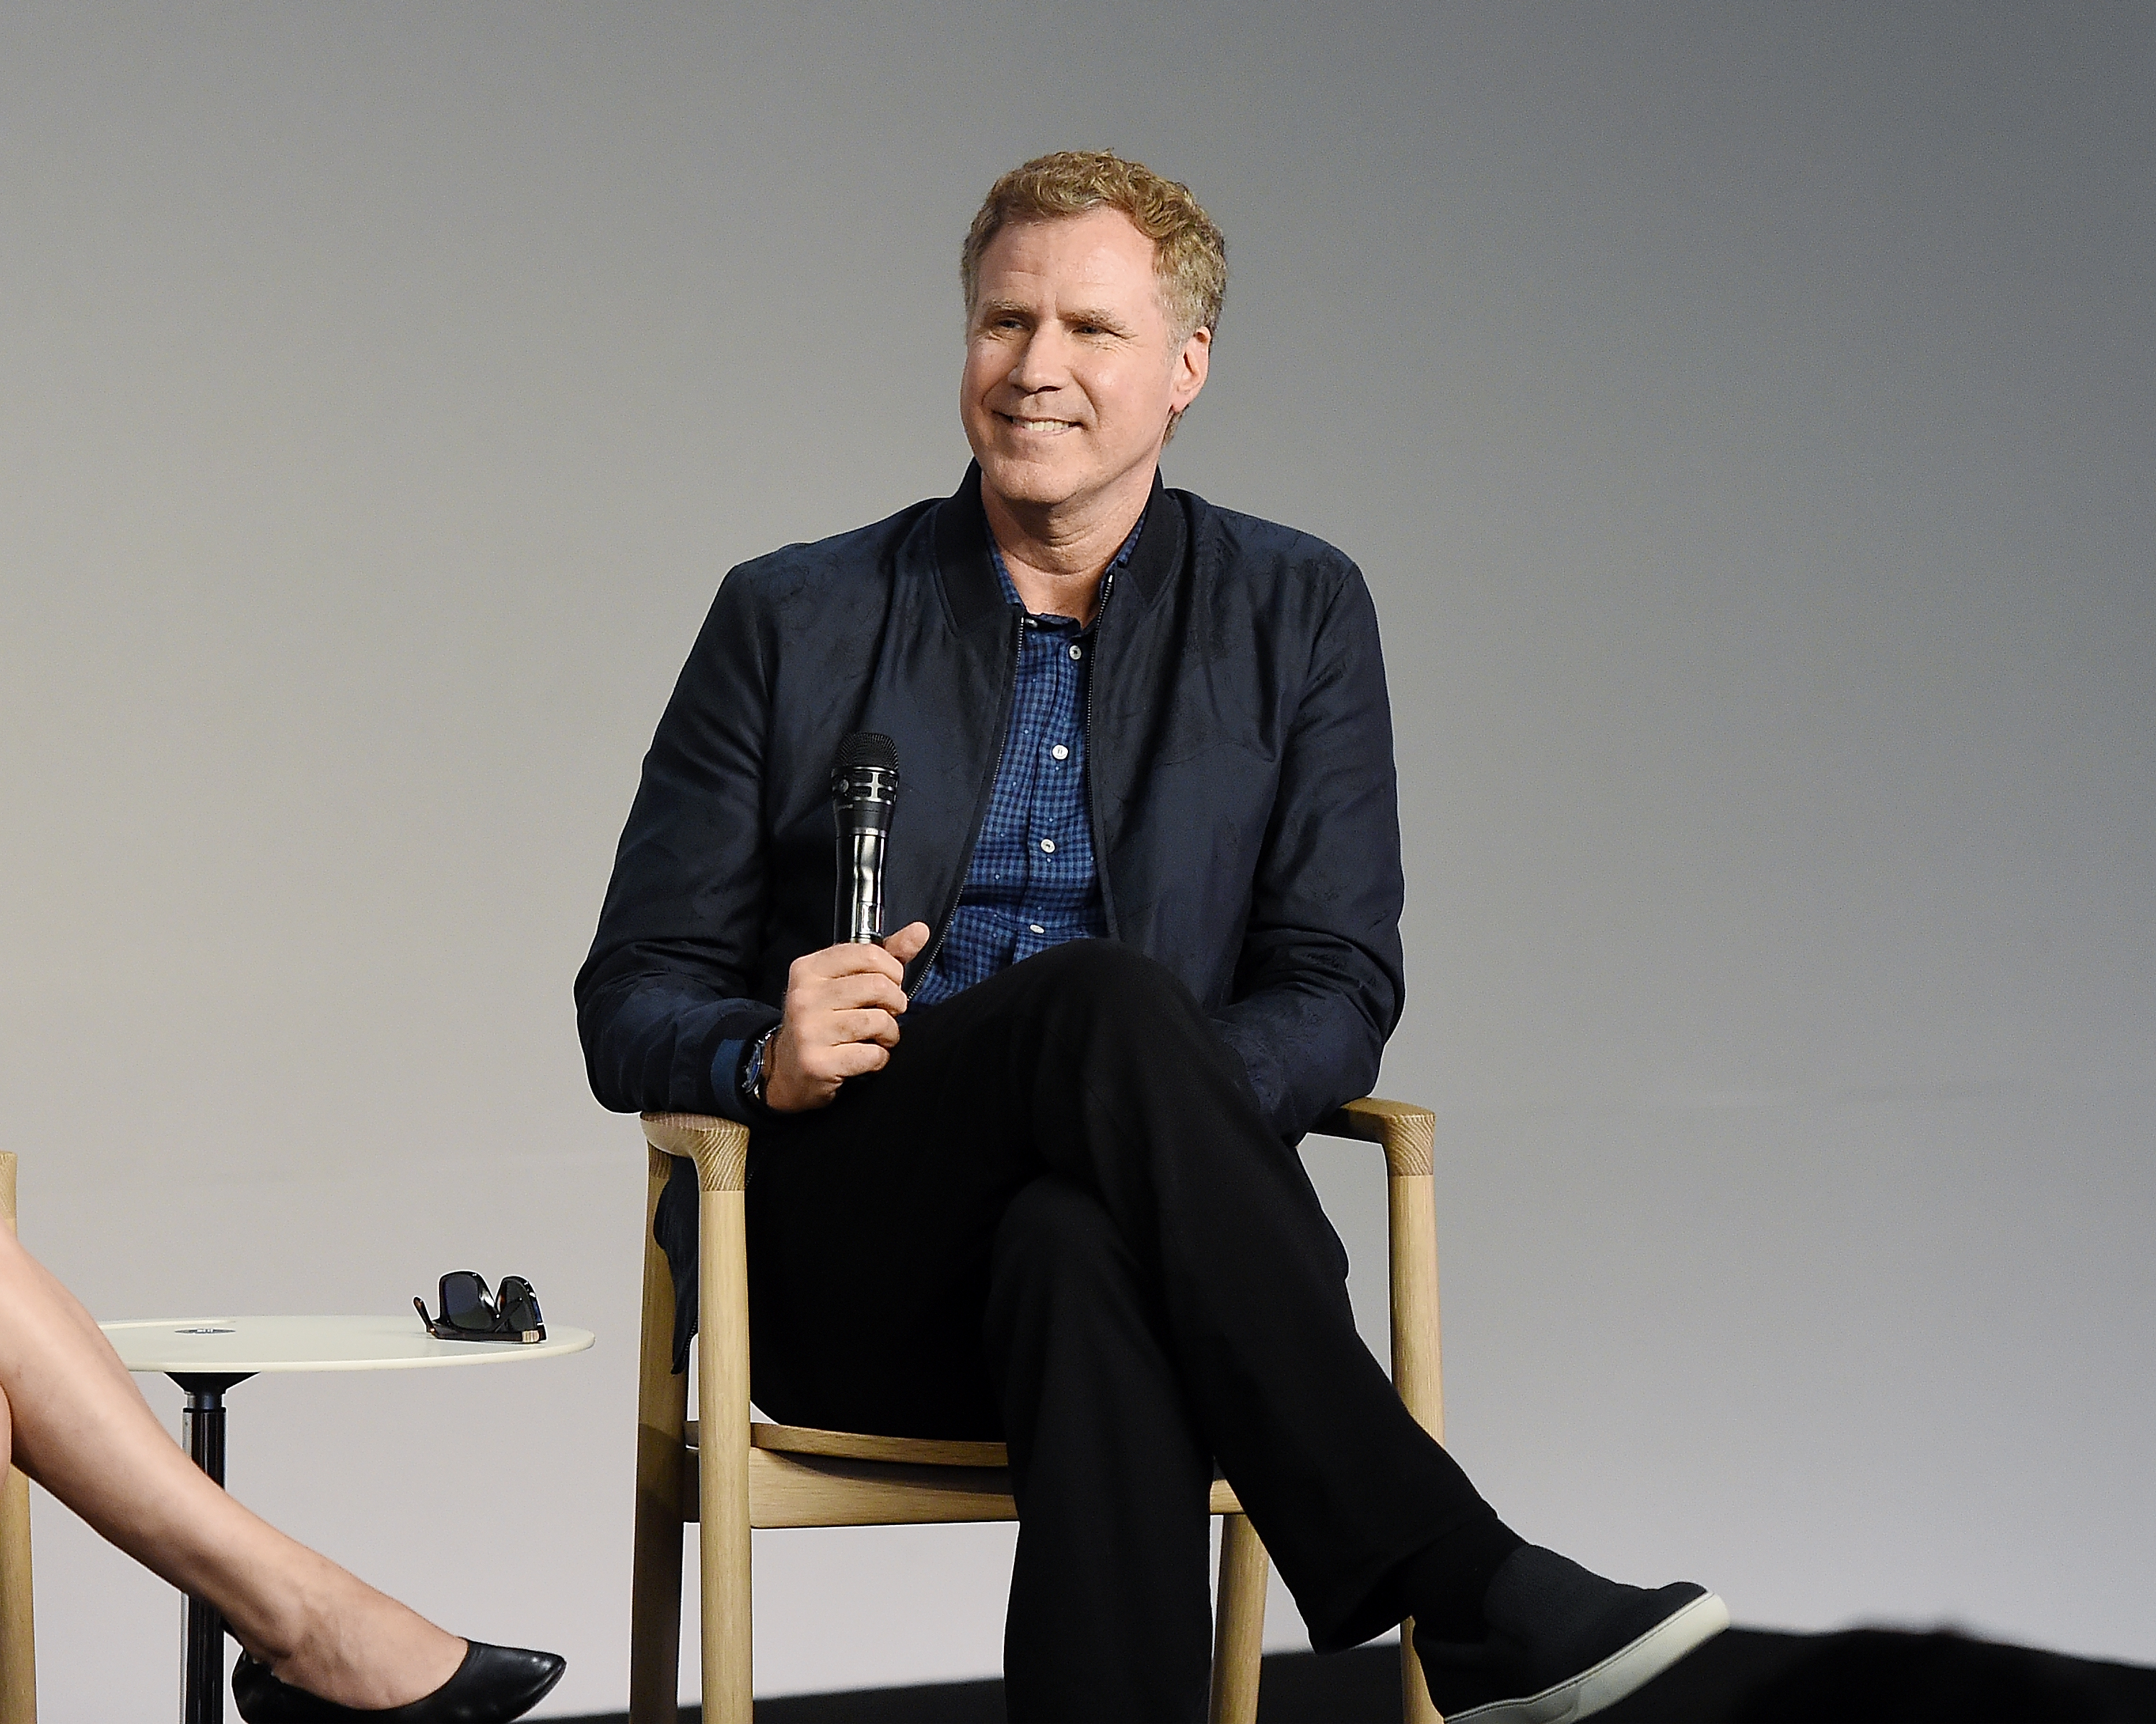 Exclusive: The House With Will Ferrell